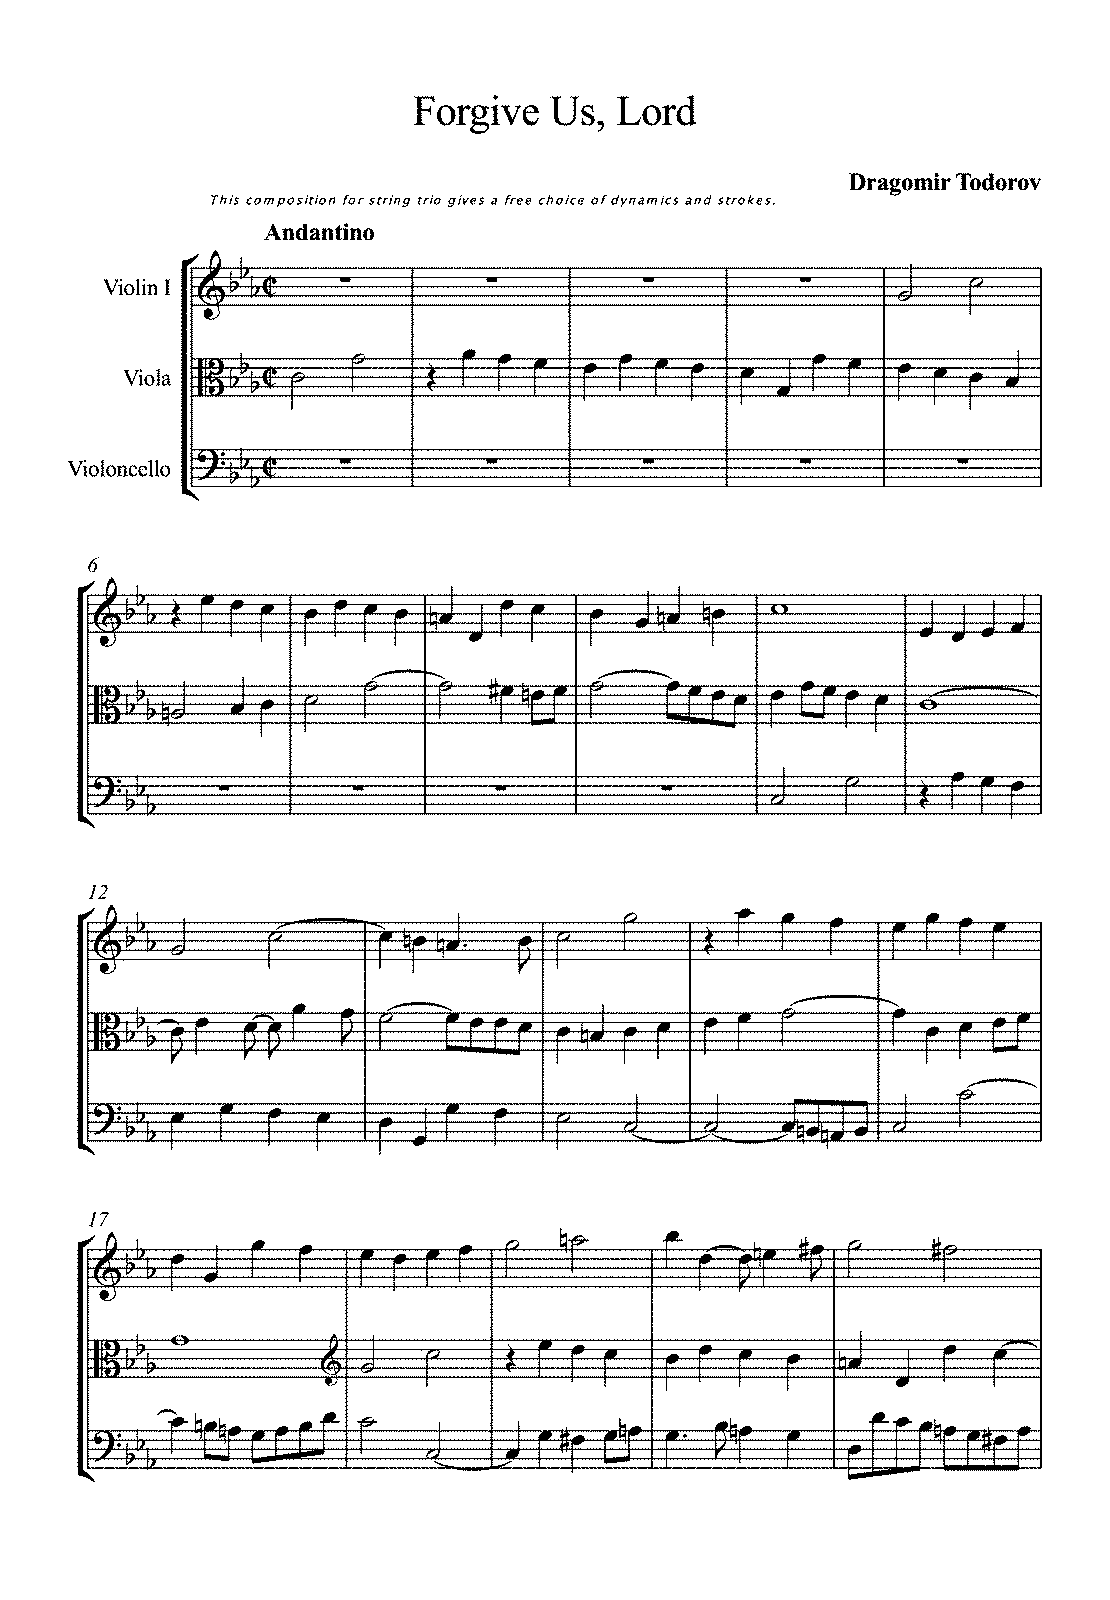 PMLP595632-Forgive Us, Lord by Dragomir Todorov (Score and Parts).pdf